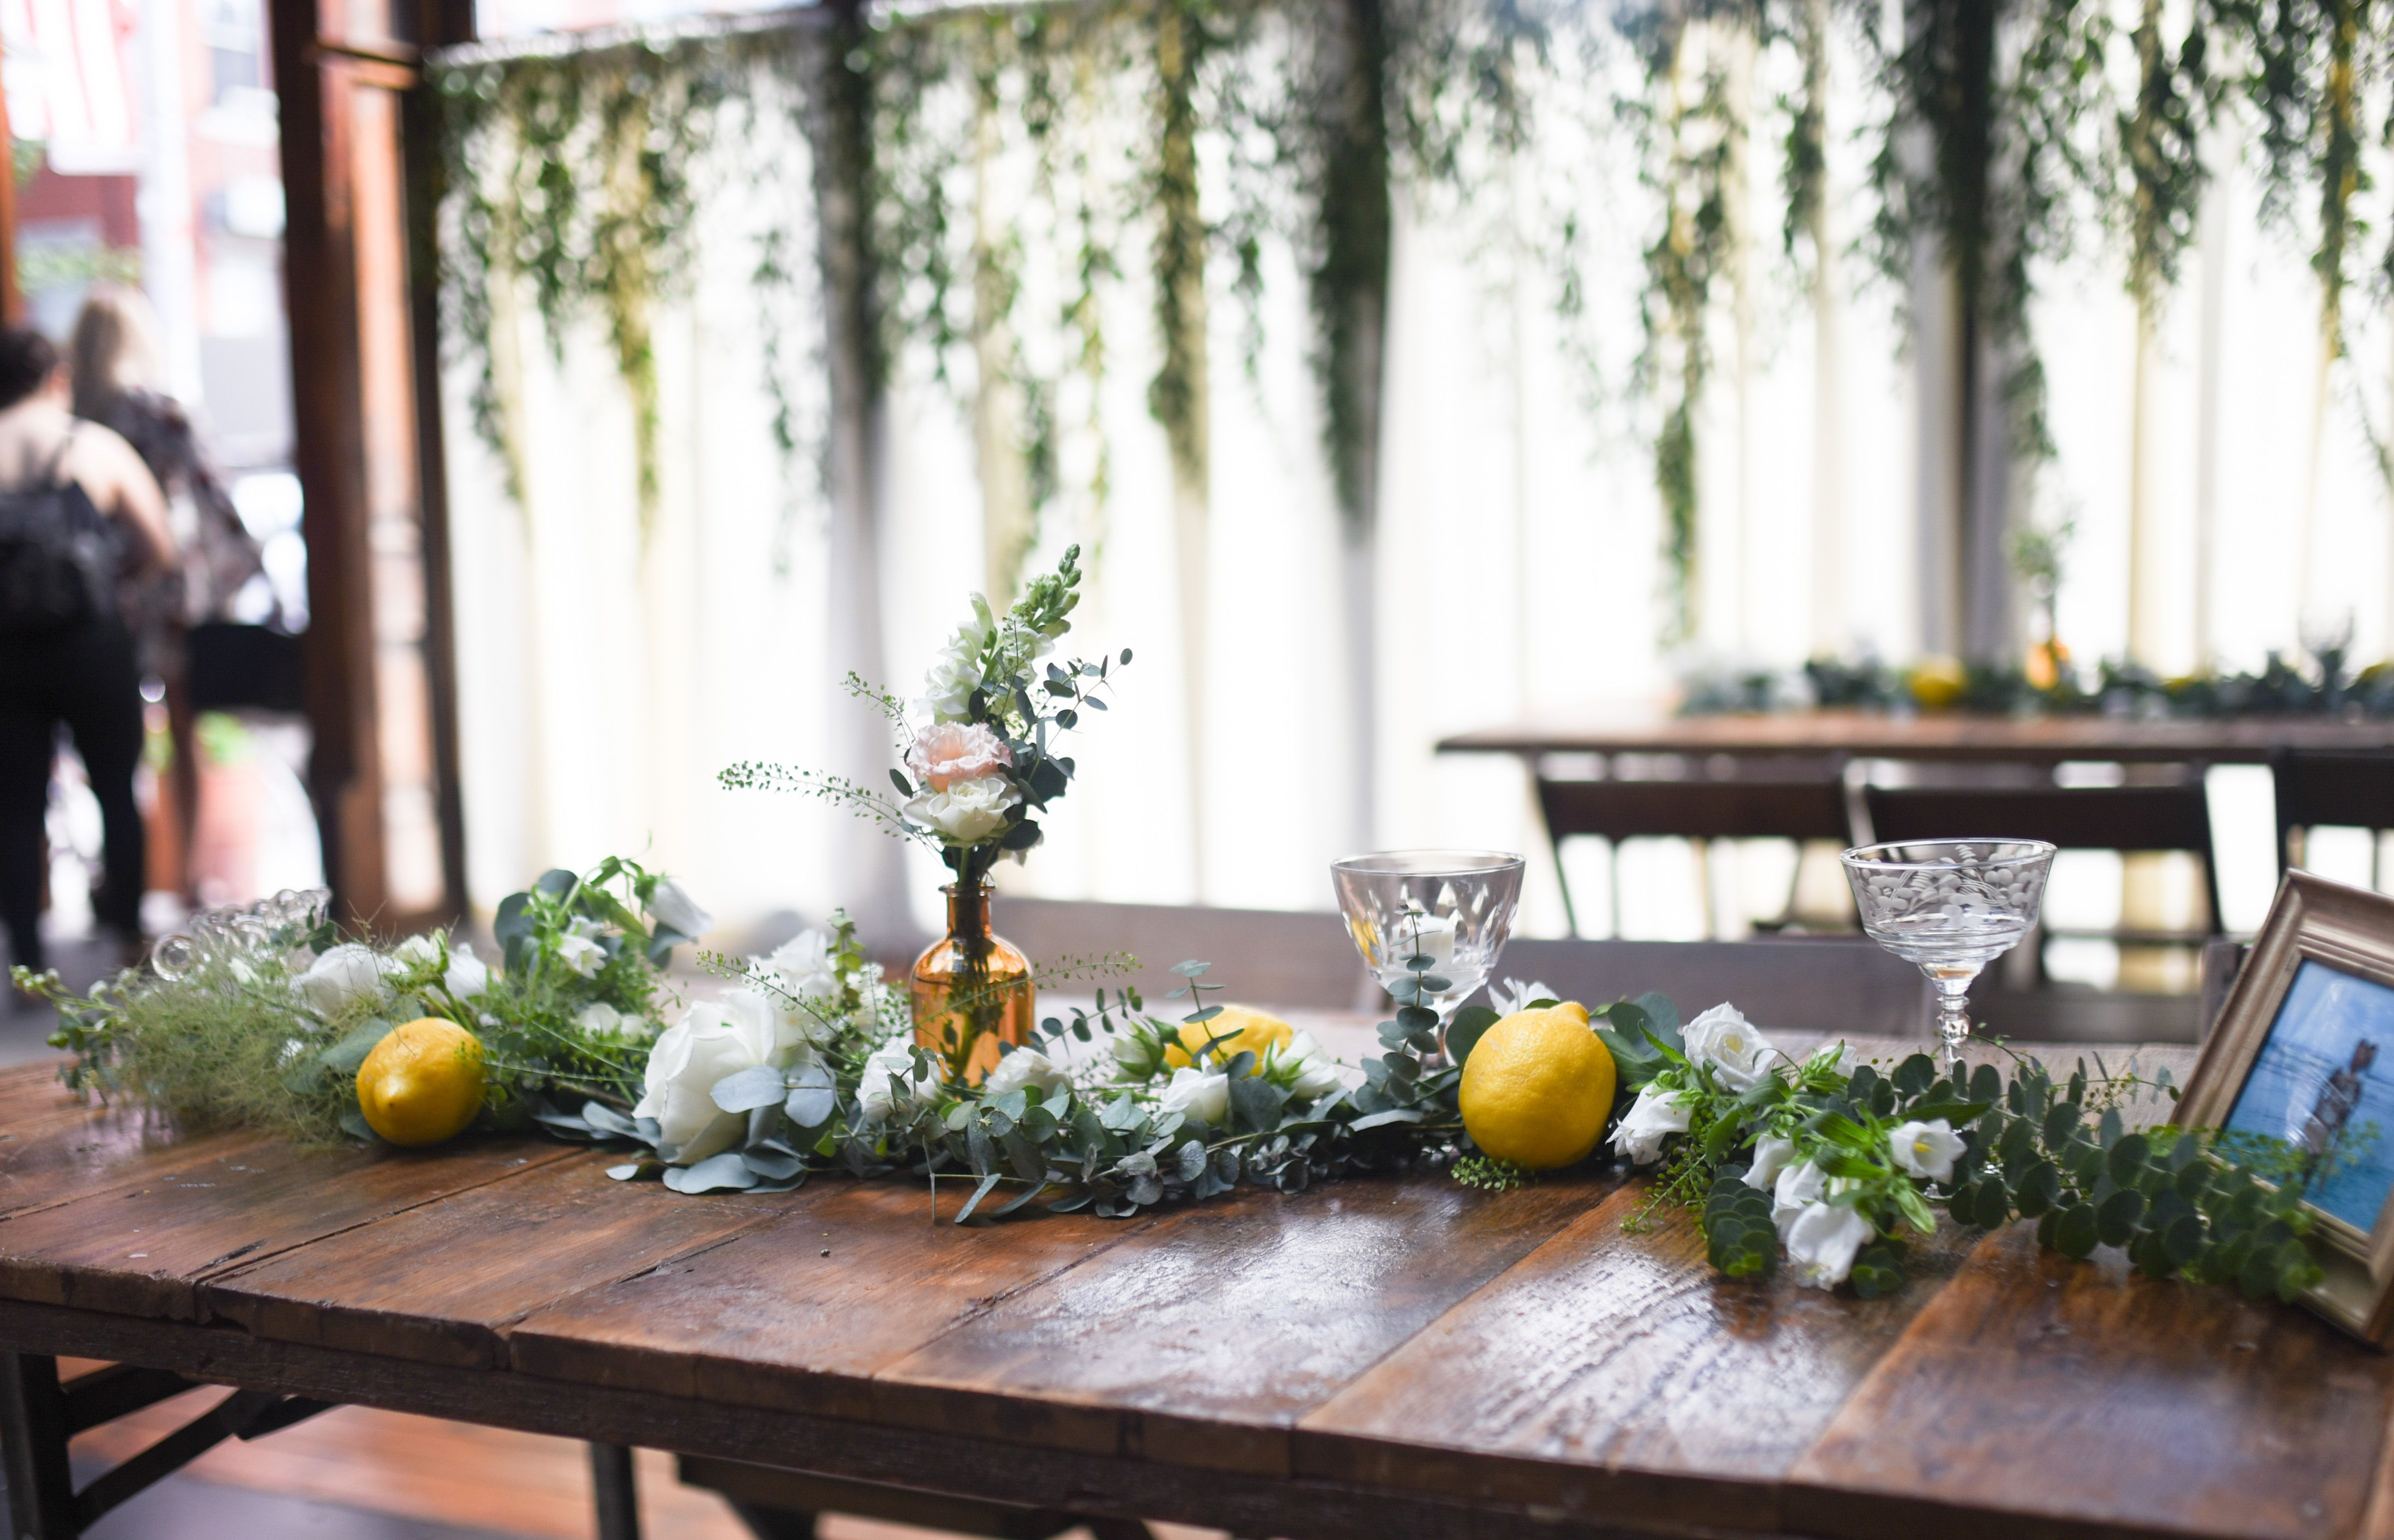 irina at brooklyn winery greenery garlands and lemon decorations for bridal shower at brooklyn winery in williamsburg white flowers eucalyptus greenery